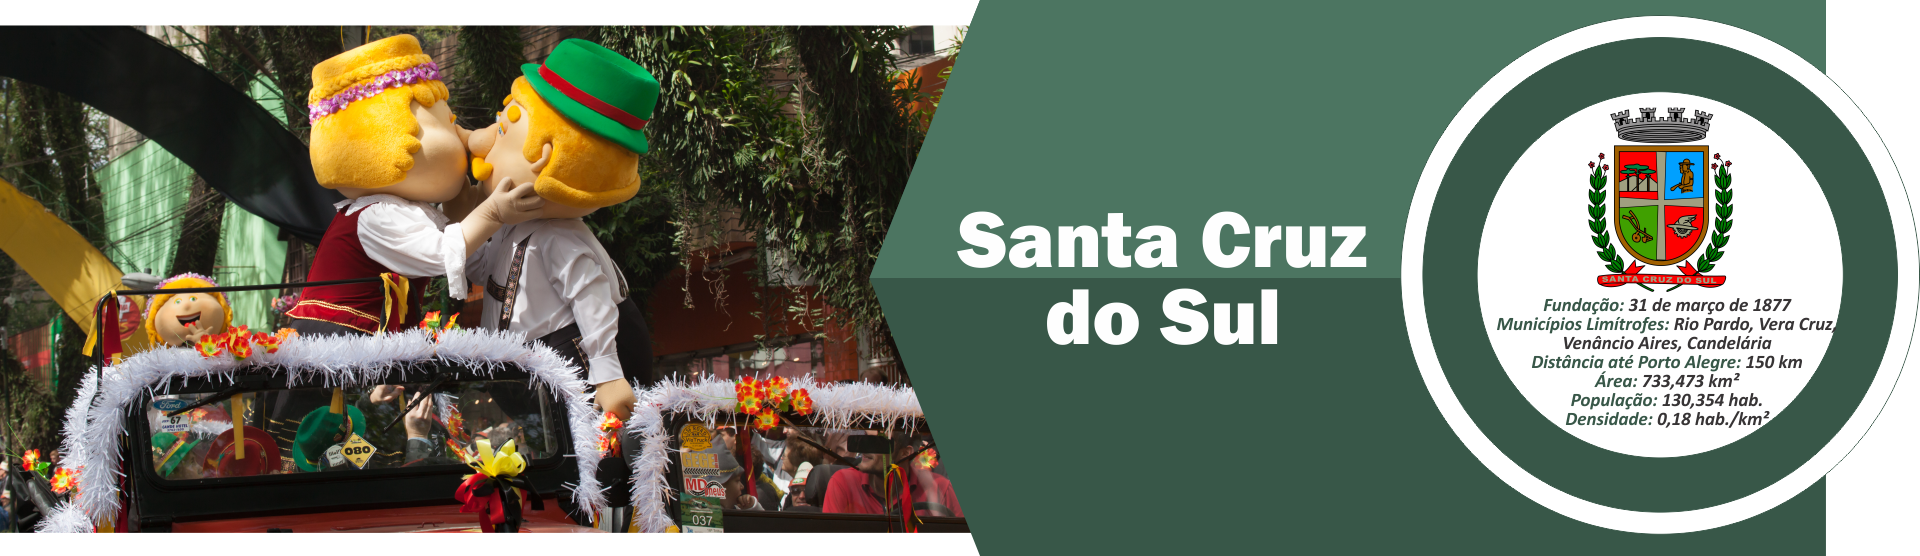 Santa Cruz do Sul